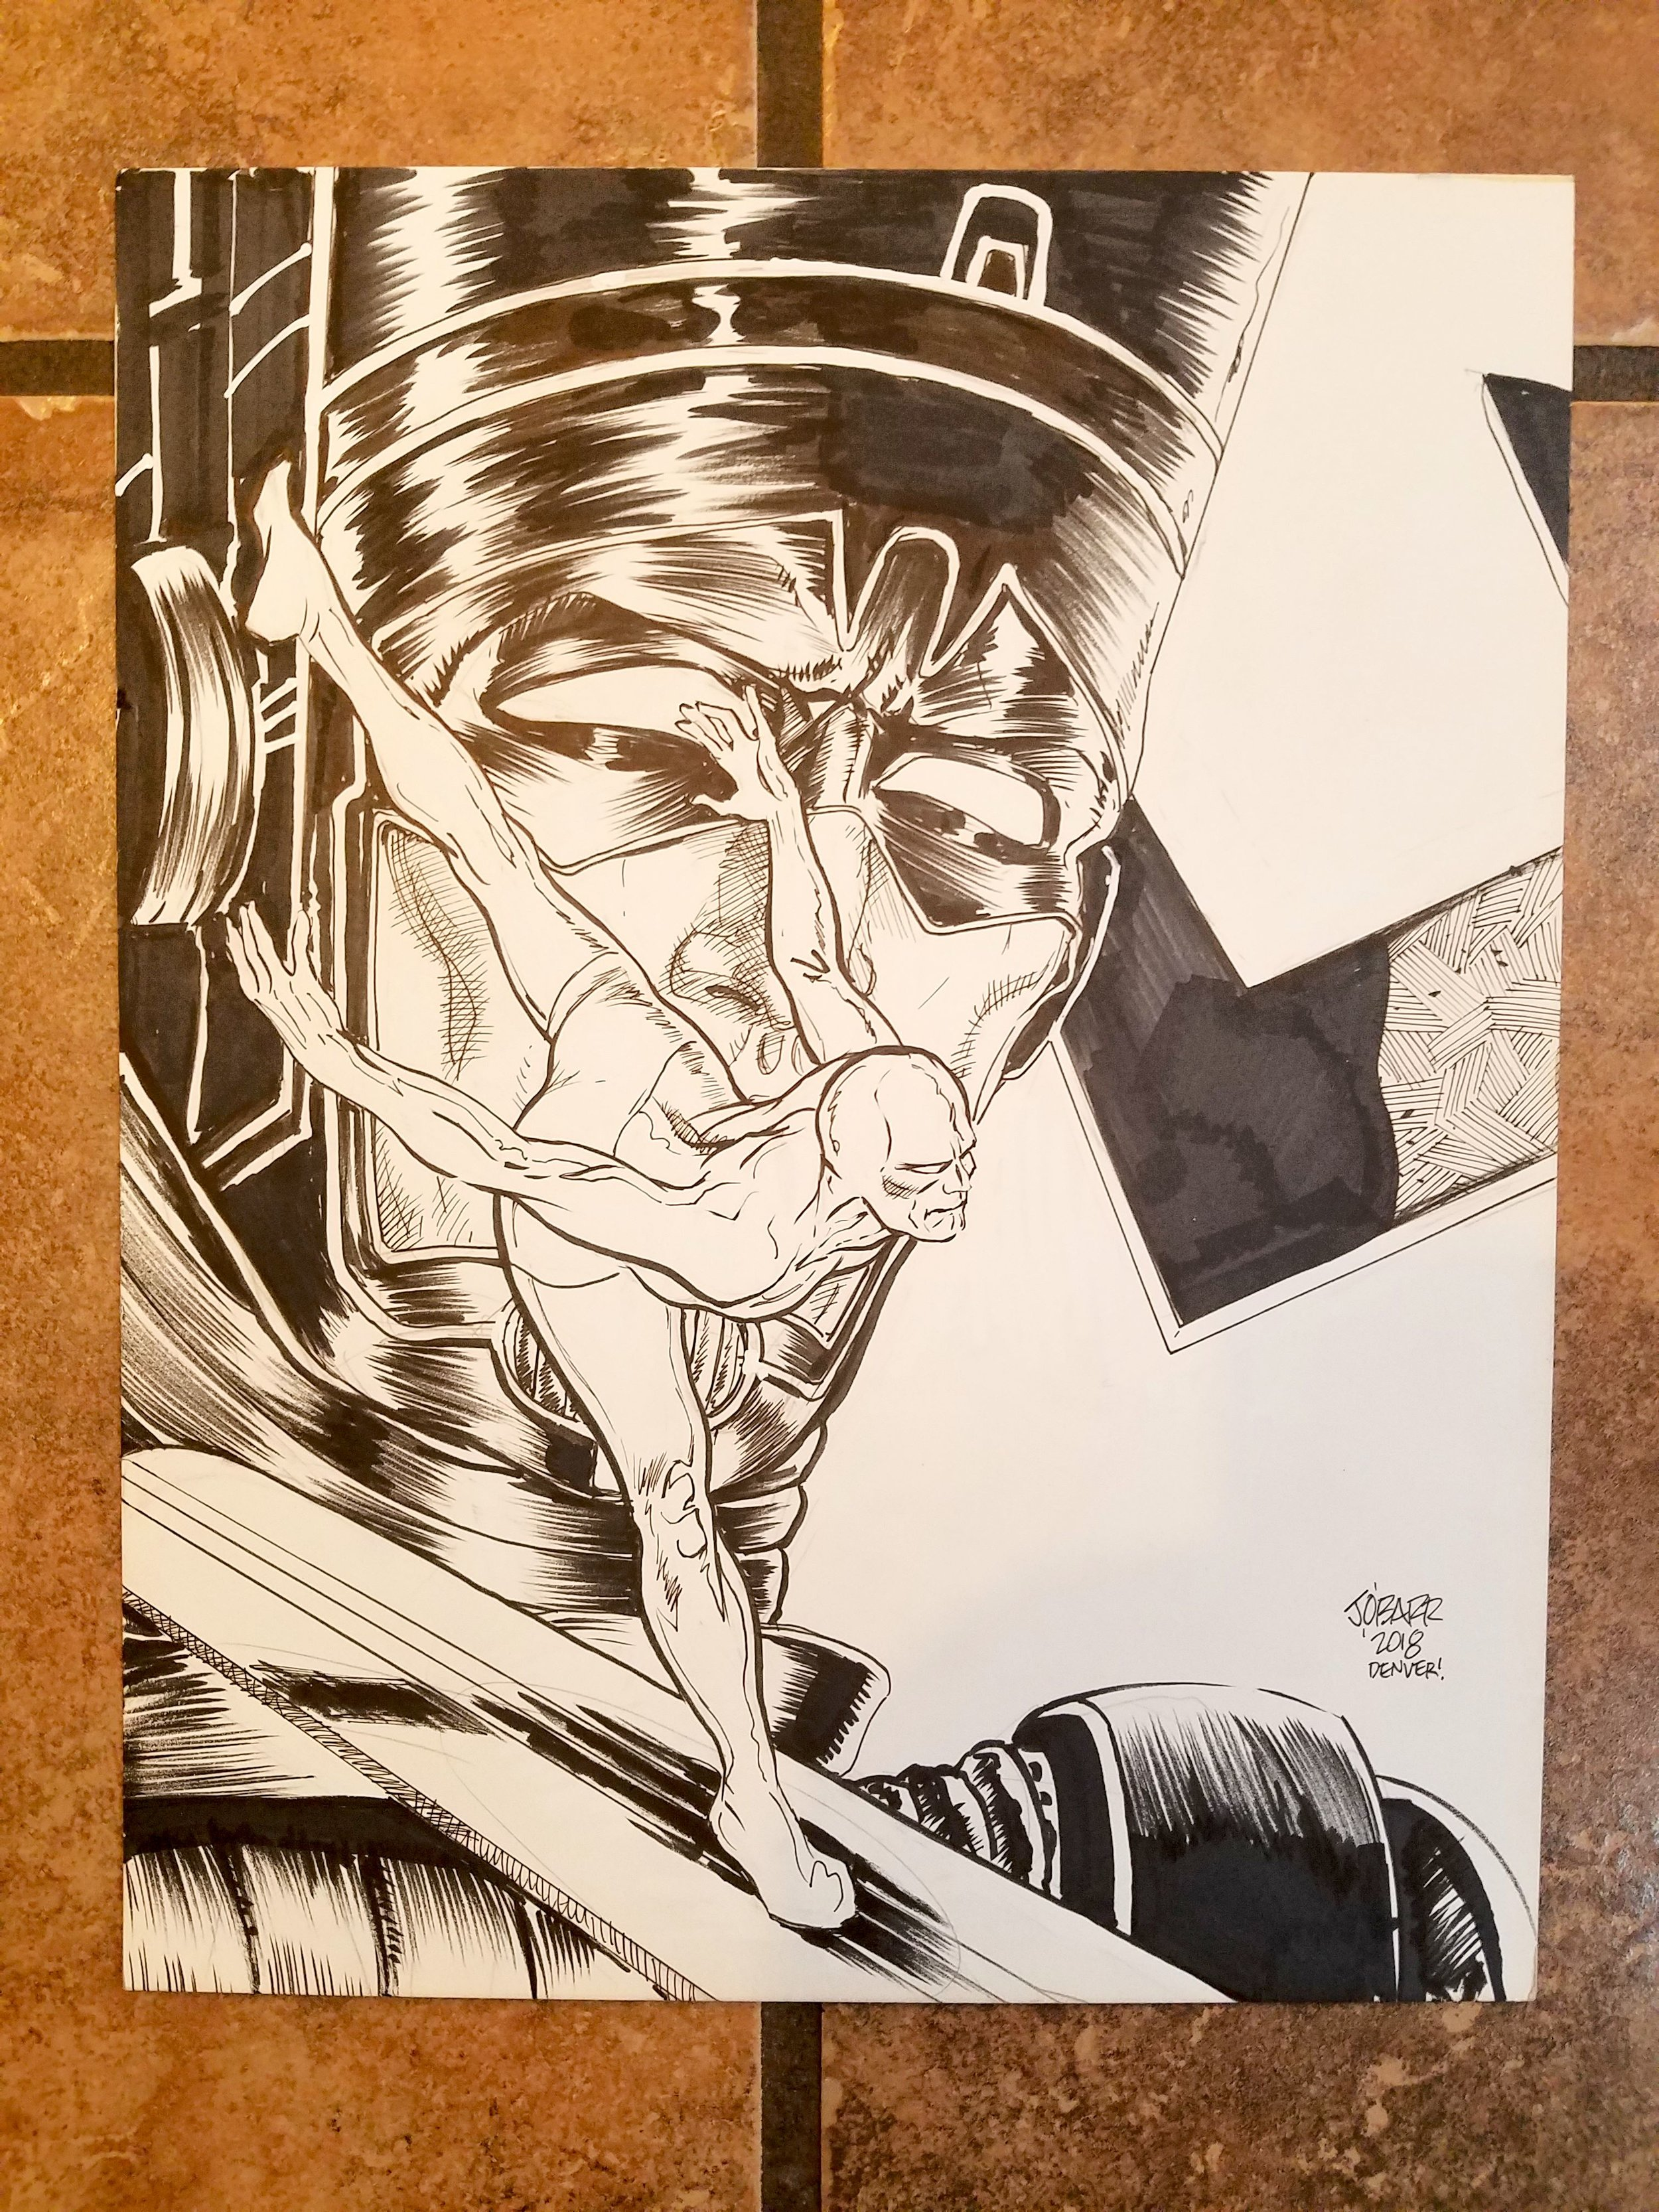 A commission from James O'Barr done for me at DINK 2018.